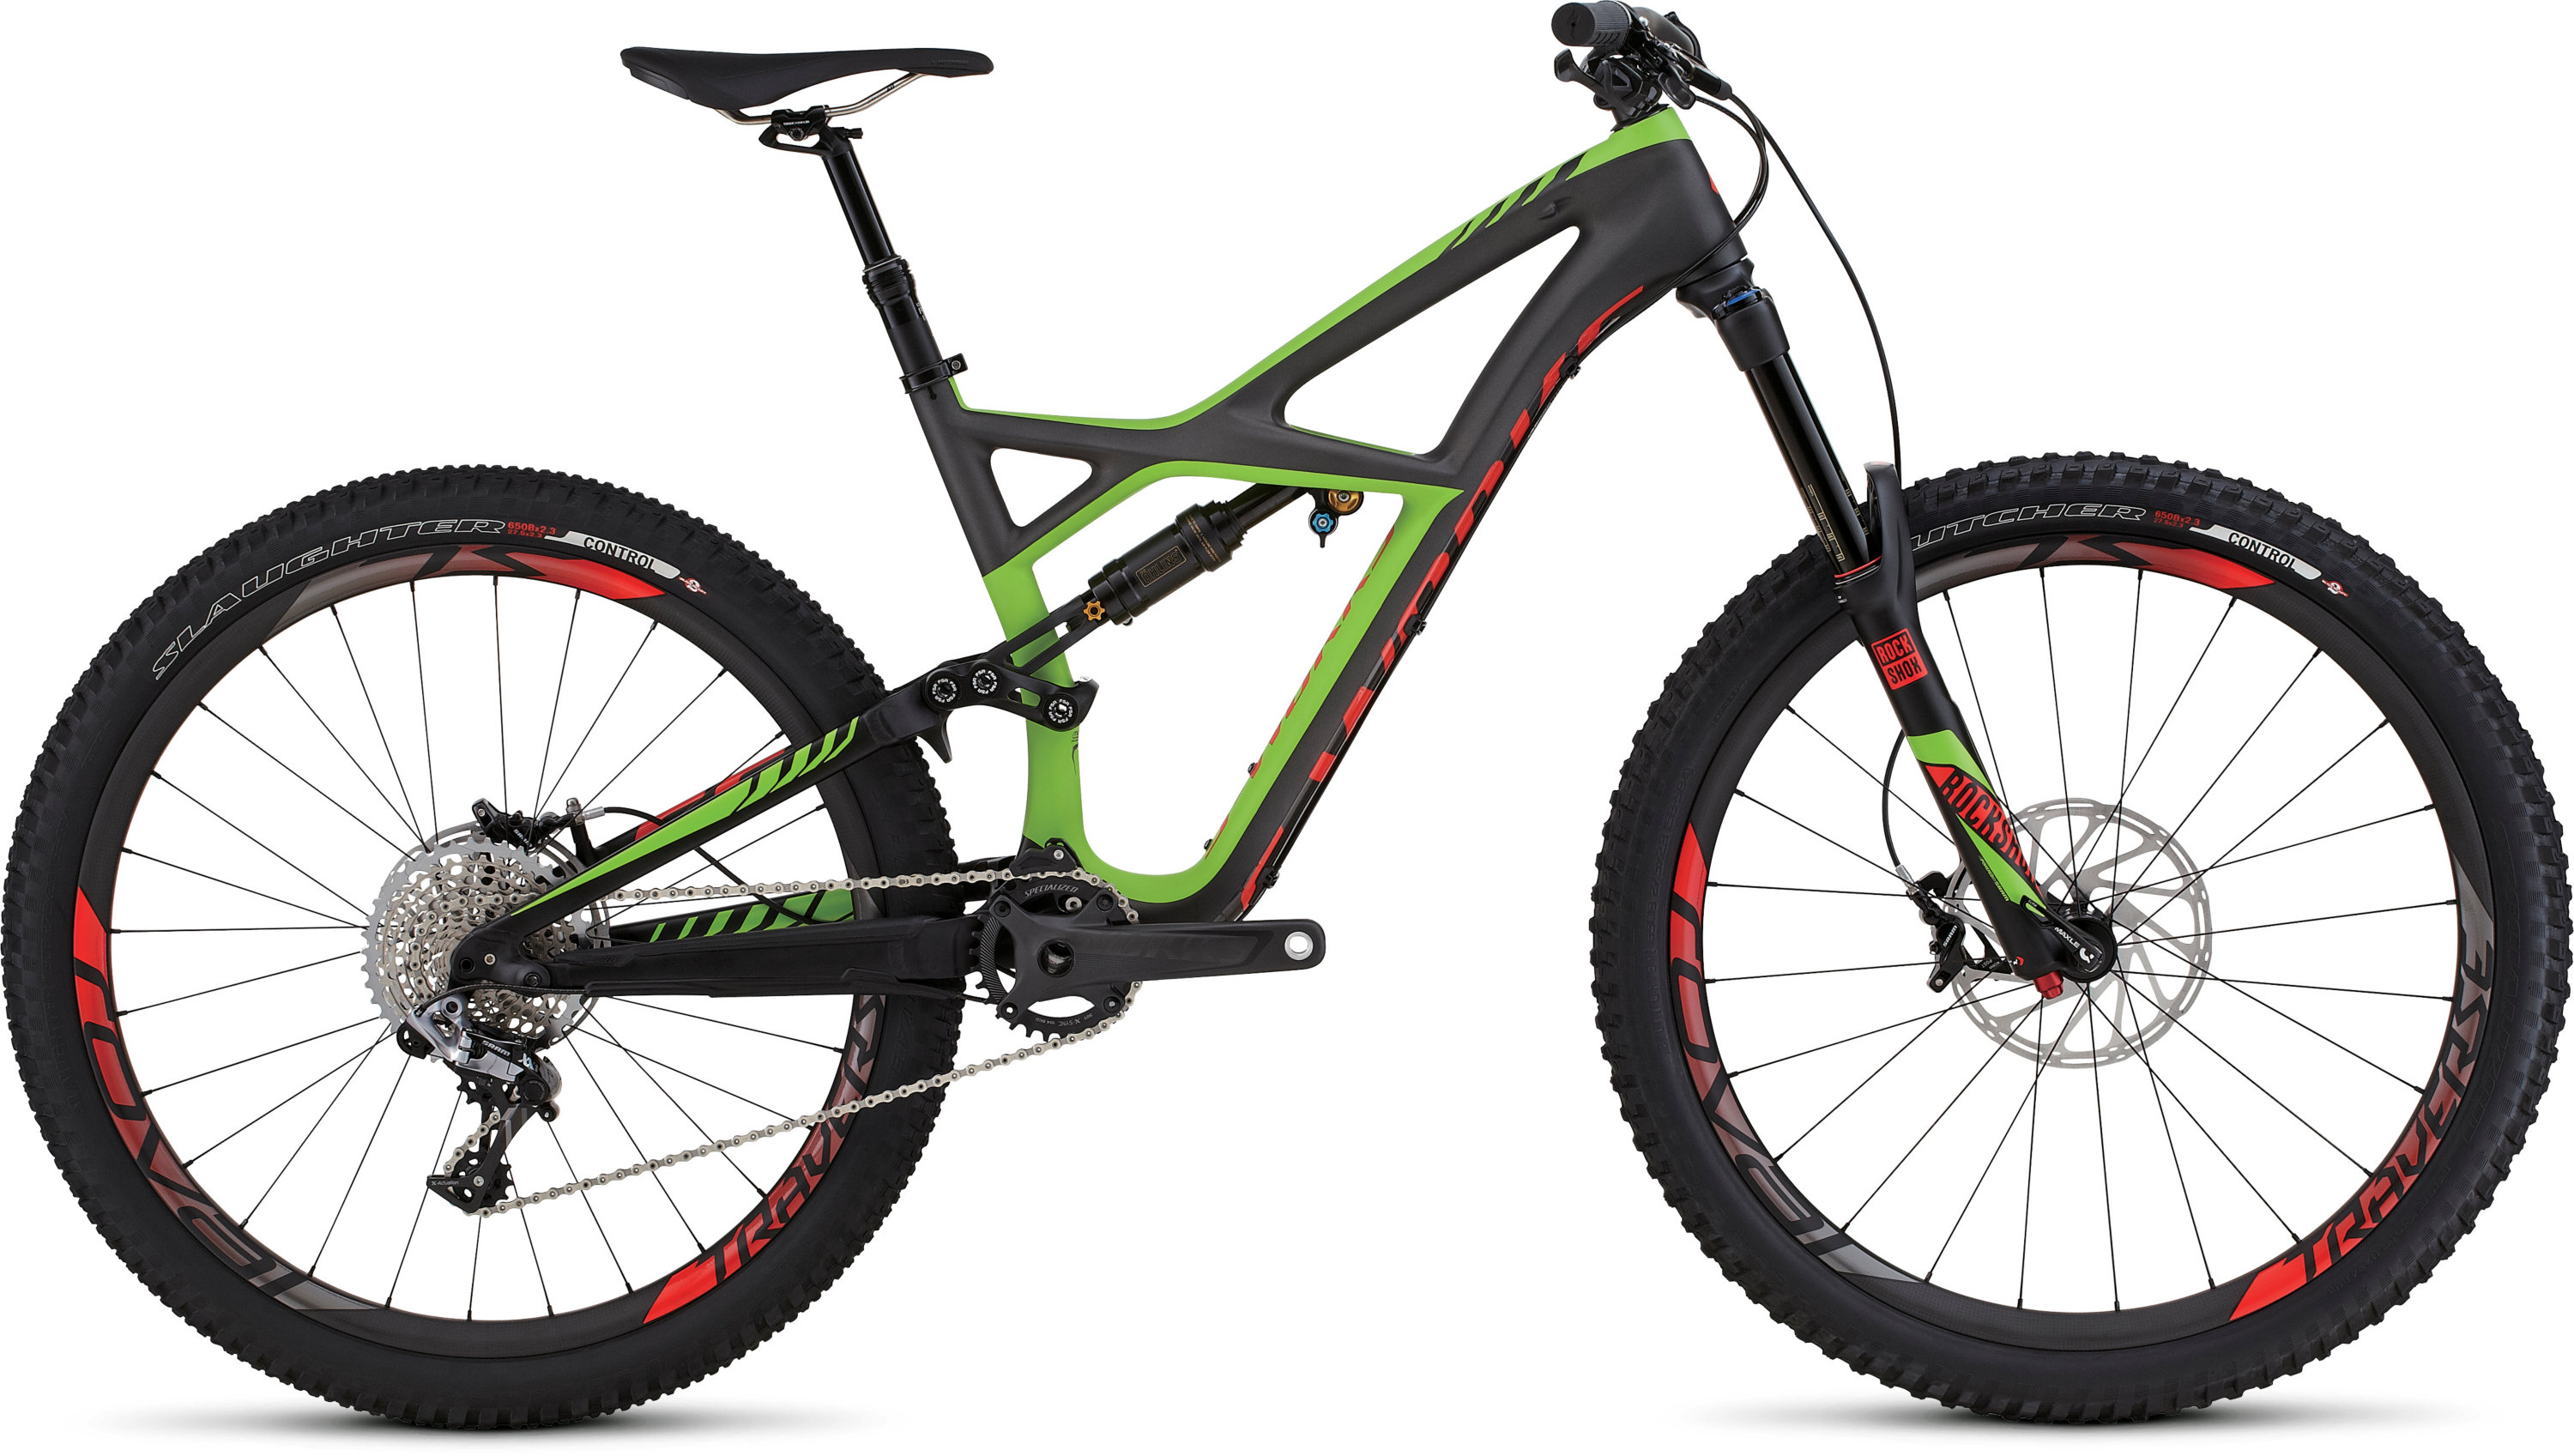 SPECIALIZED SW ENDURO FSR CARBON 650B CHARTNTCARB/MONGRN/RKTRED S - schneider-sports